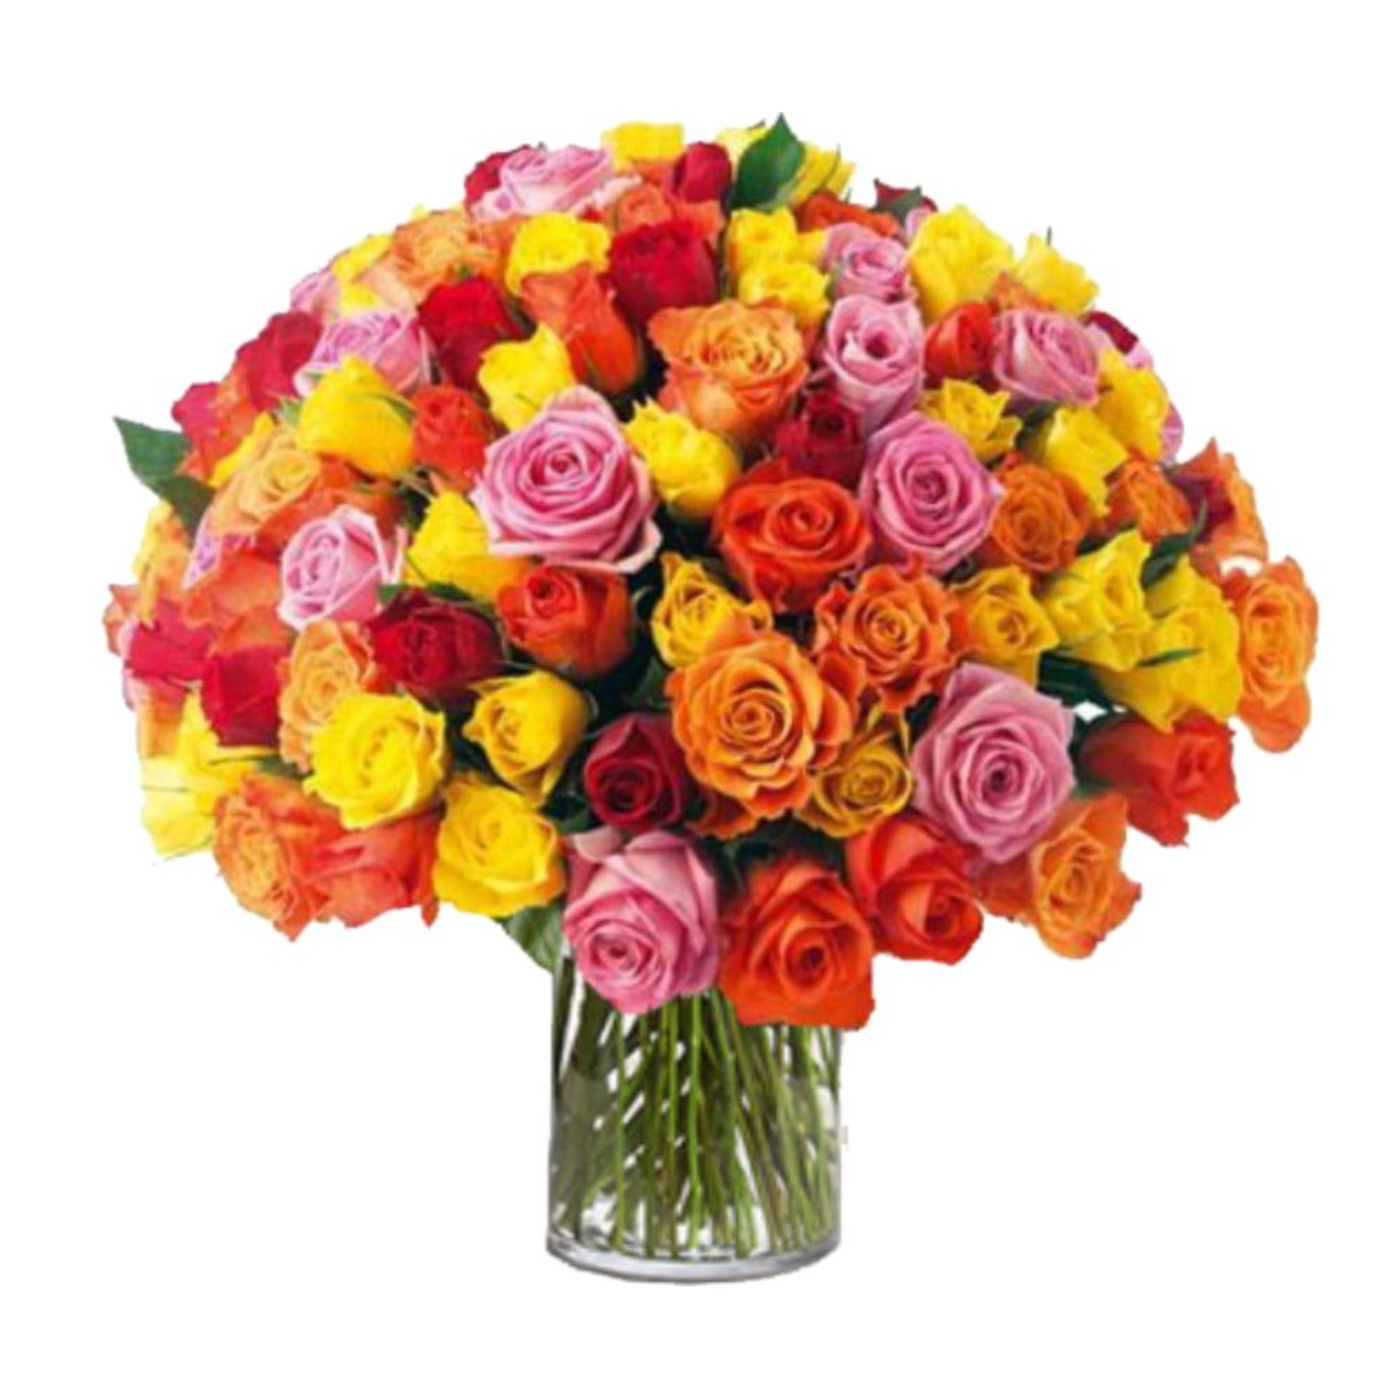 100 Mixed Roses In Vase